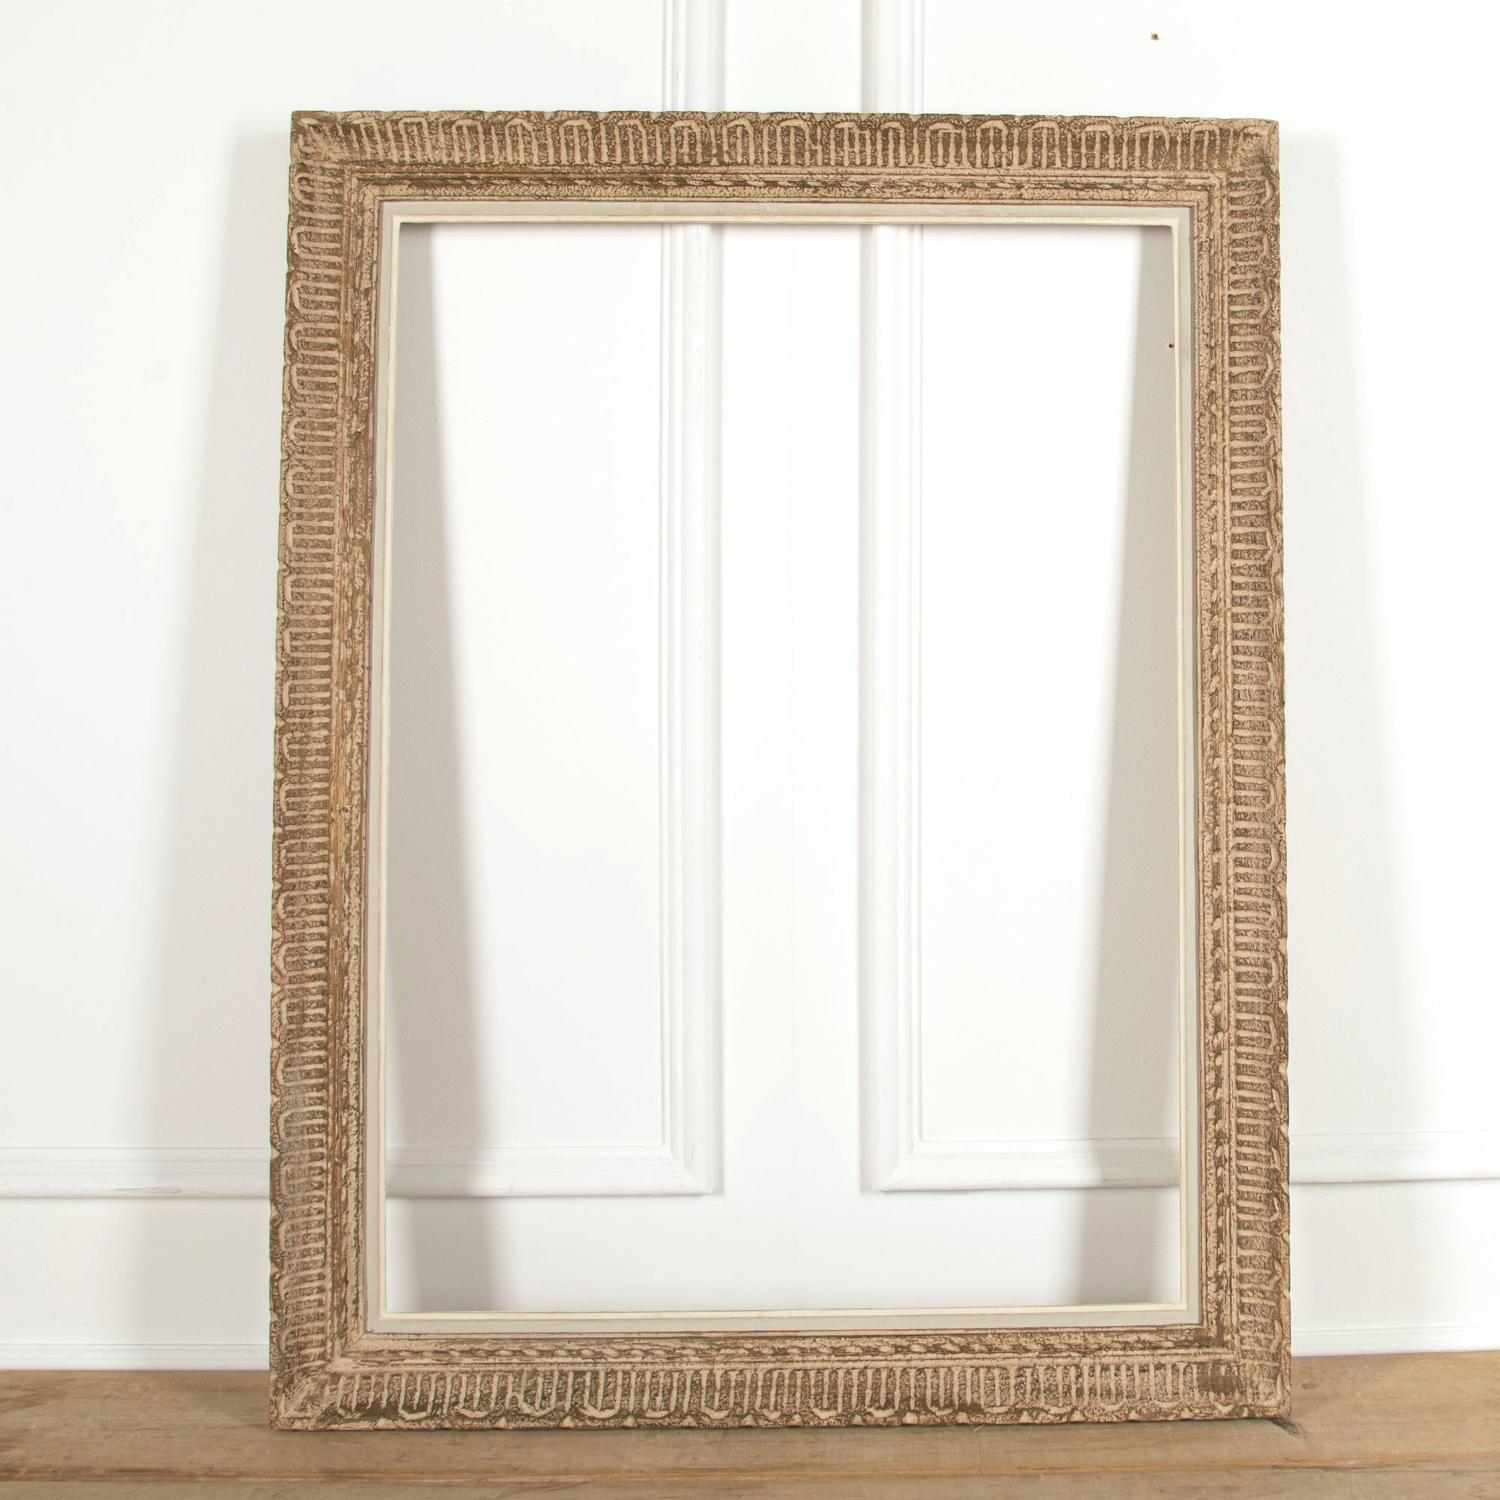 19th c French Frame - circa